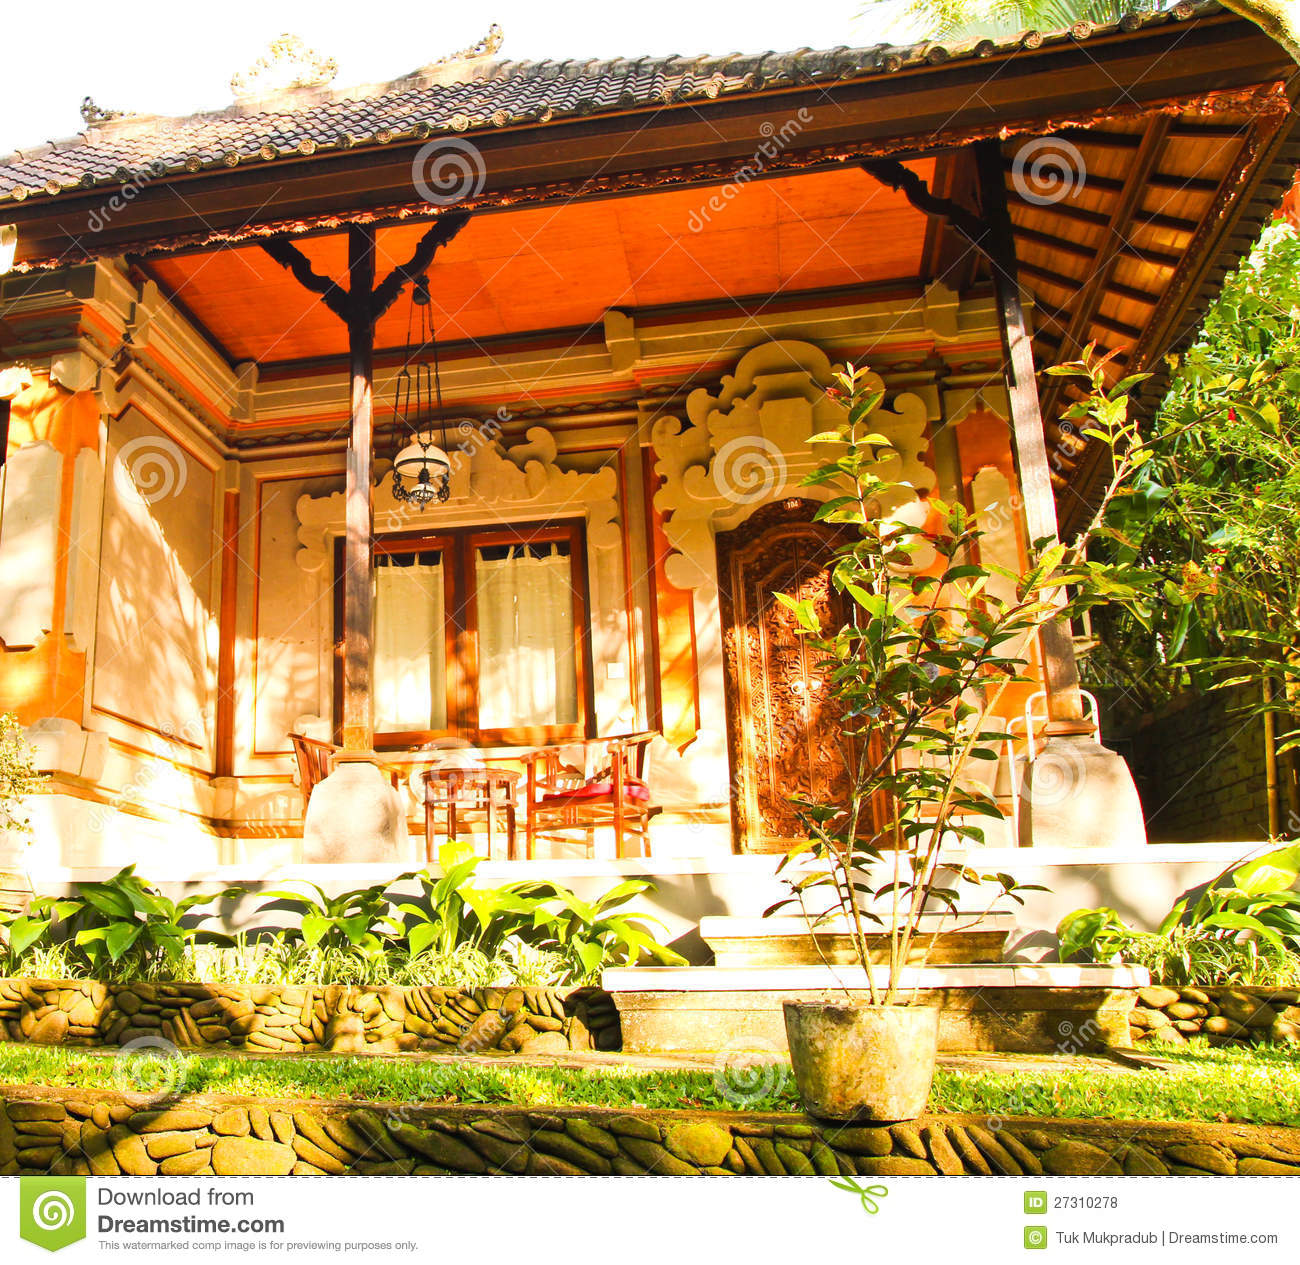 Kuta Home Designs: Prefab Bali Style Tea Houses Balinese